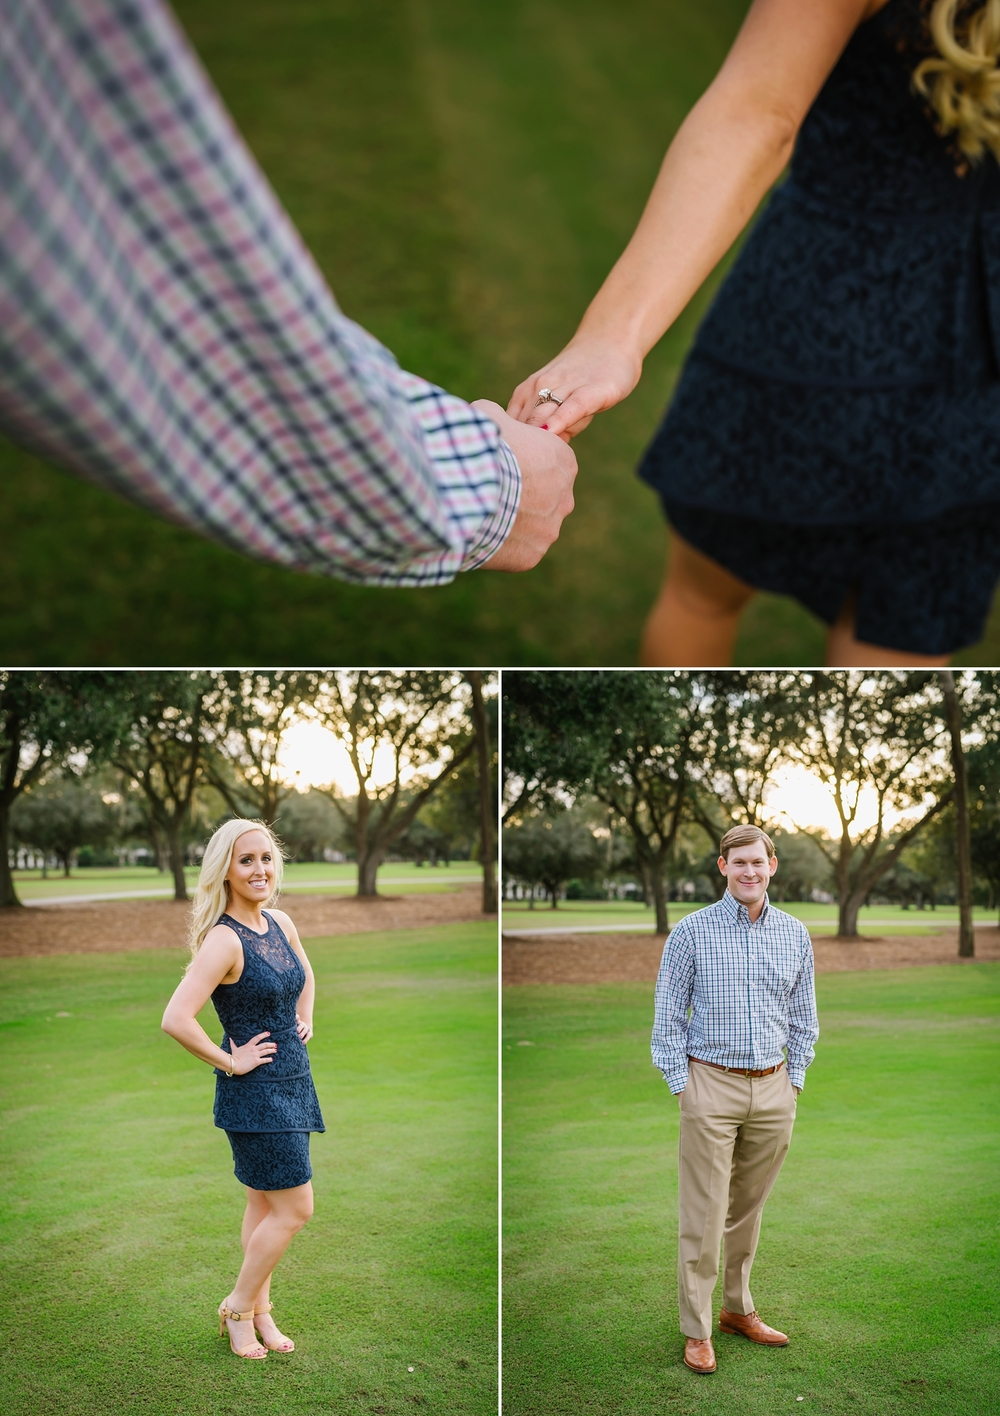 romantic-stylish-elegant-upscale-engagement-photography-ashlee-hamon-tampa_0007.jpg